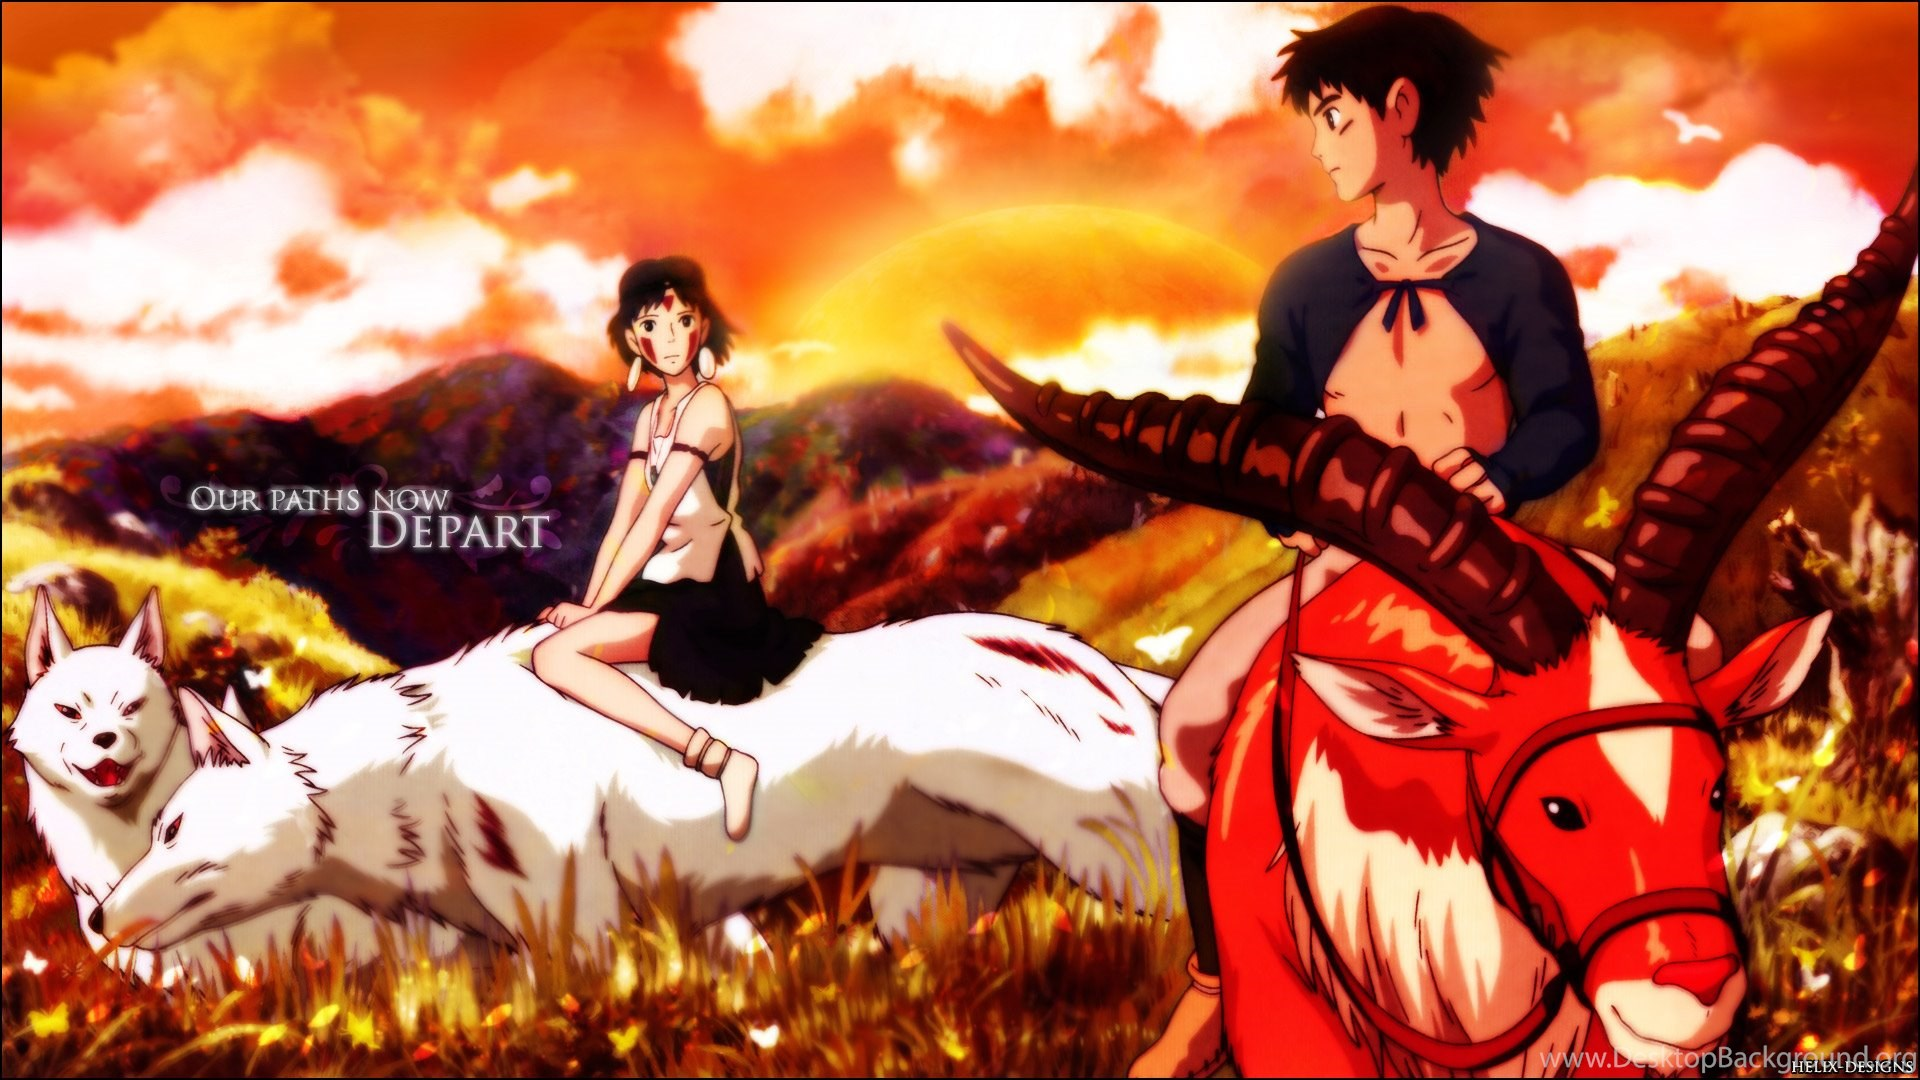 Download Princess Mononoke Wallpapers 1920x1080 Desktop Background